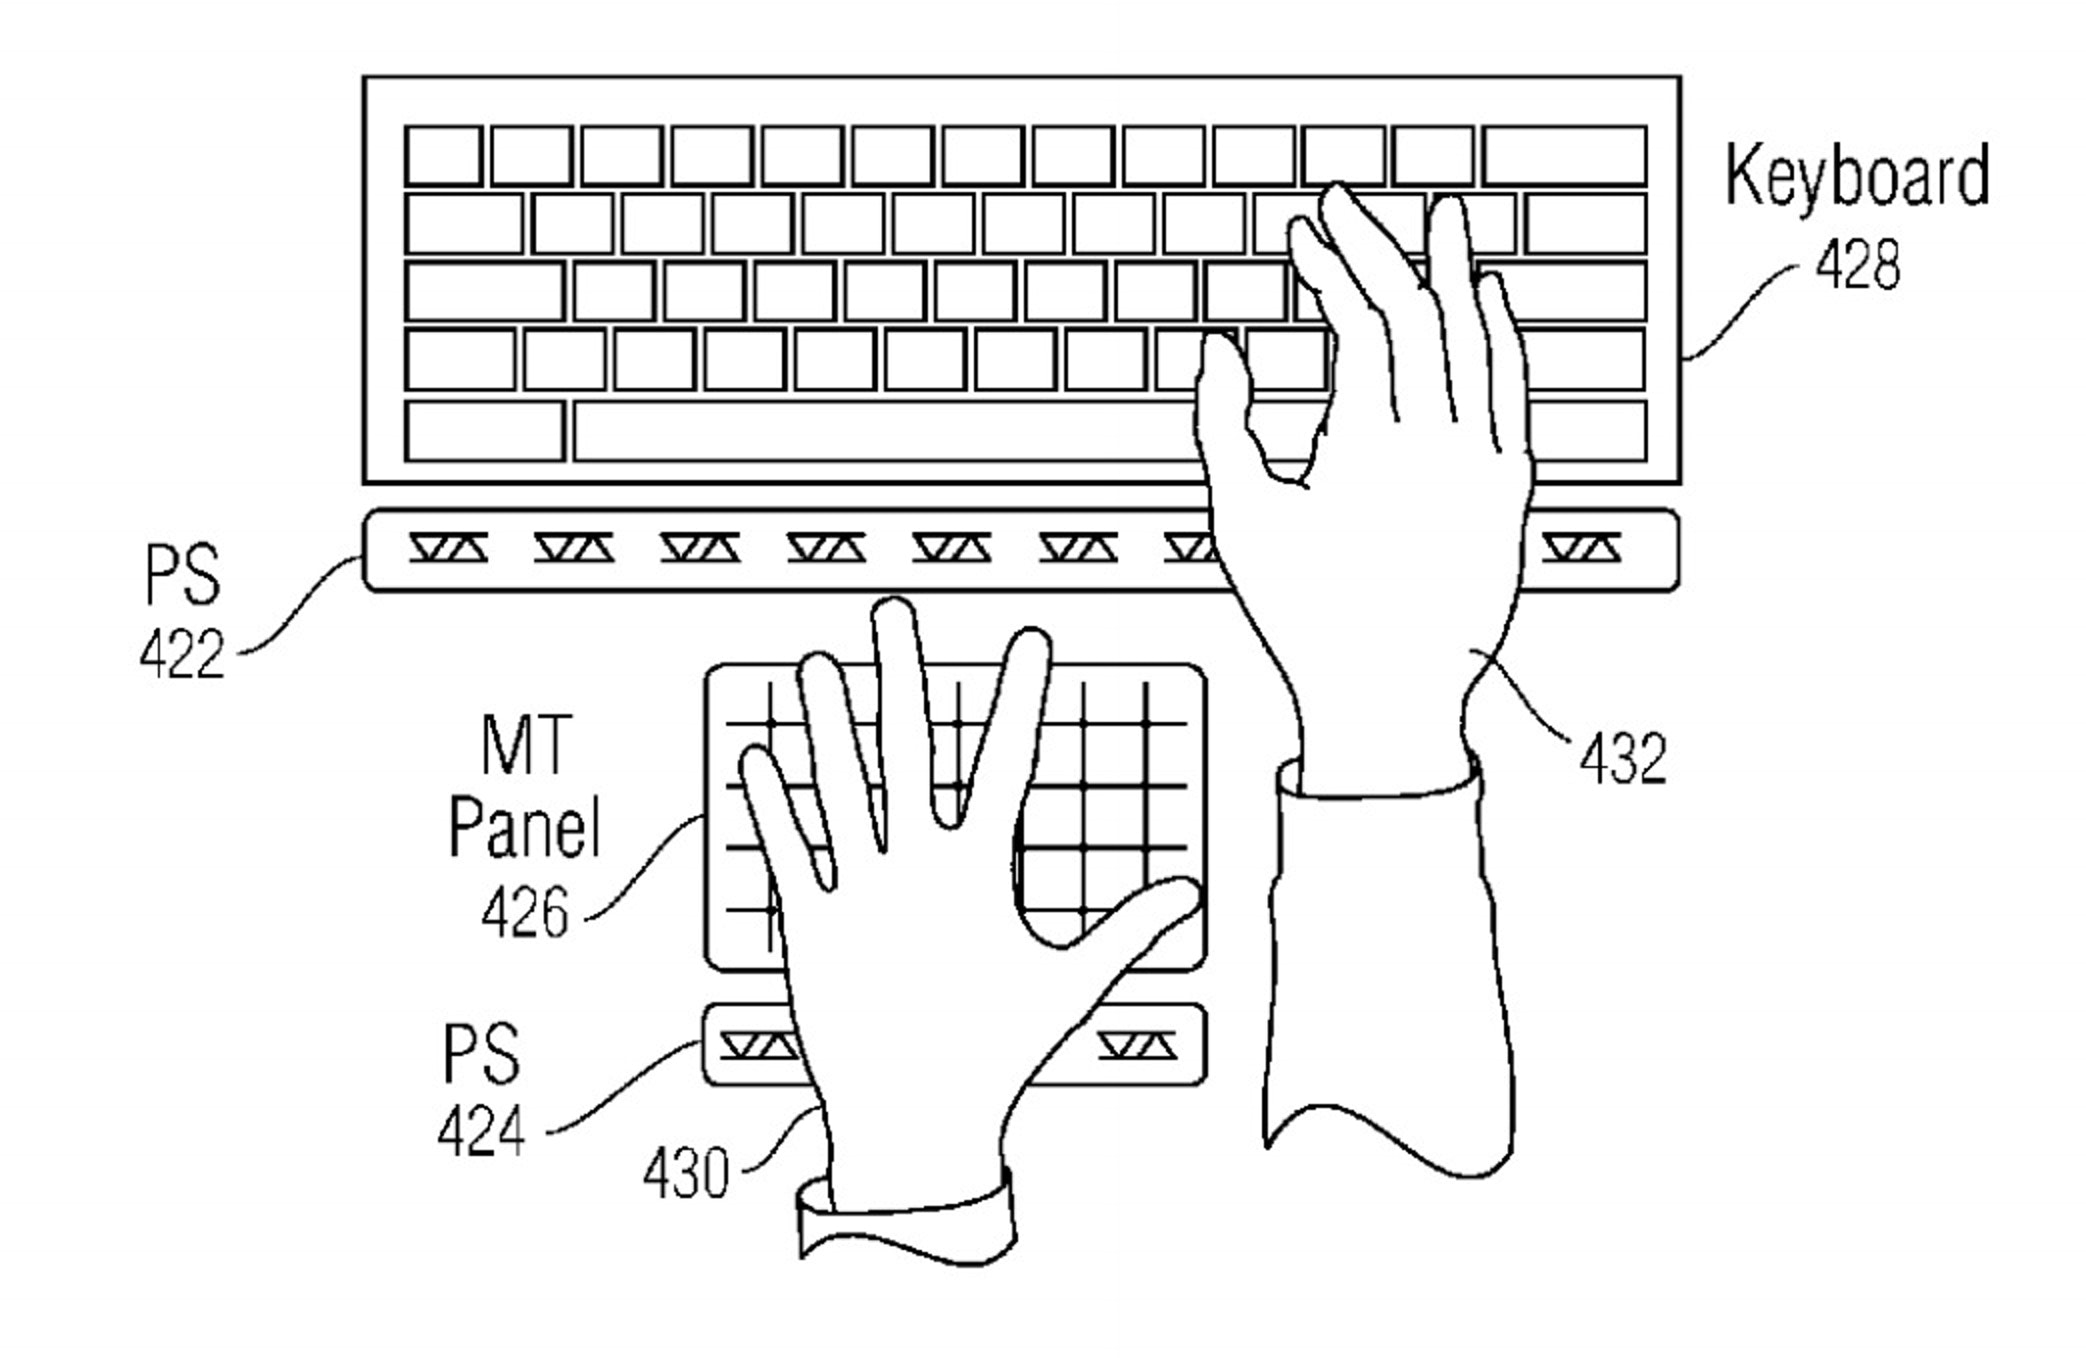 A non-touch panel could provide input in addition to a traditional touch keyboard.